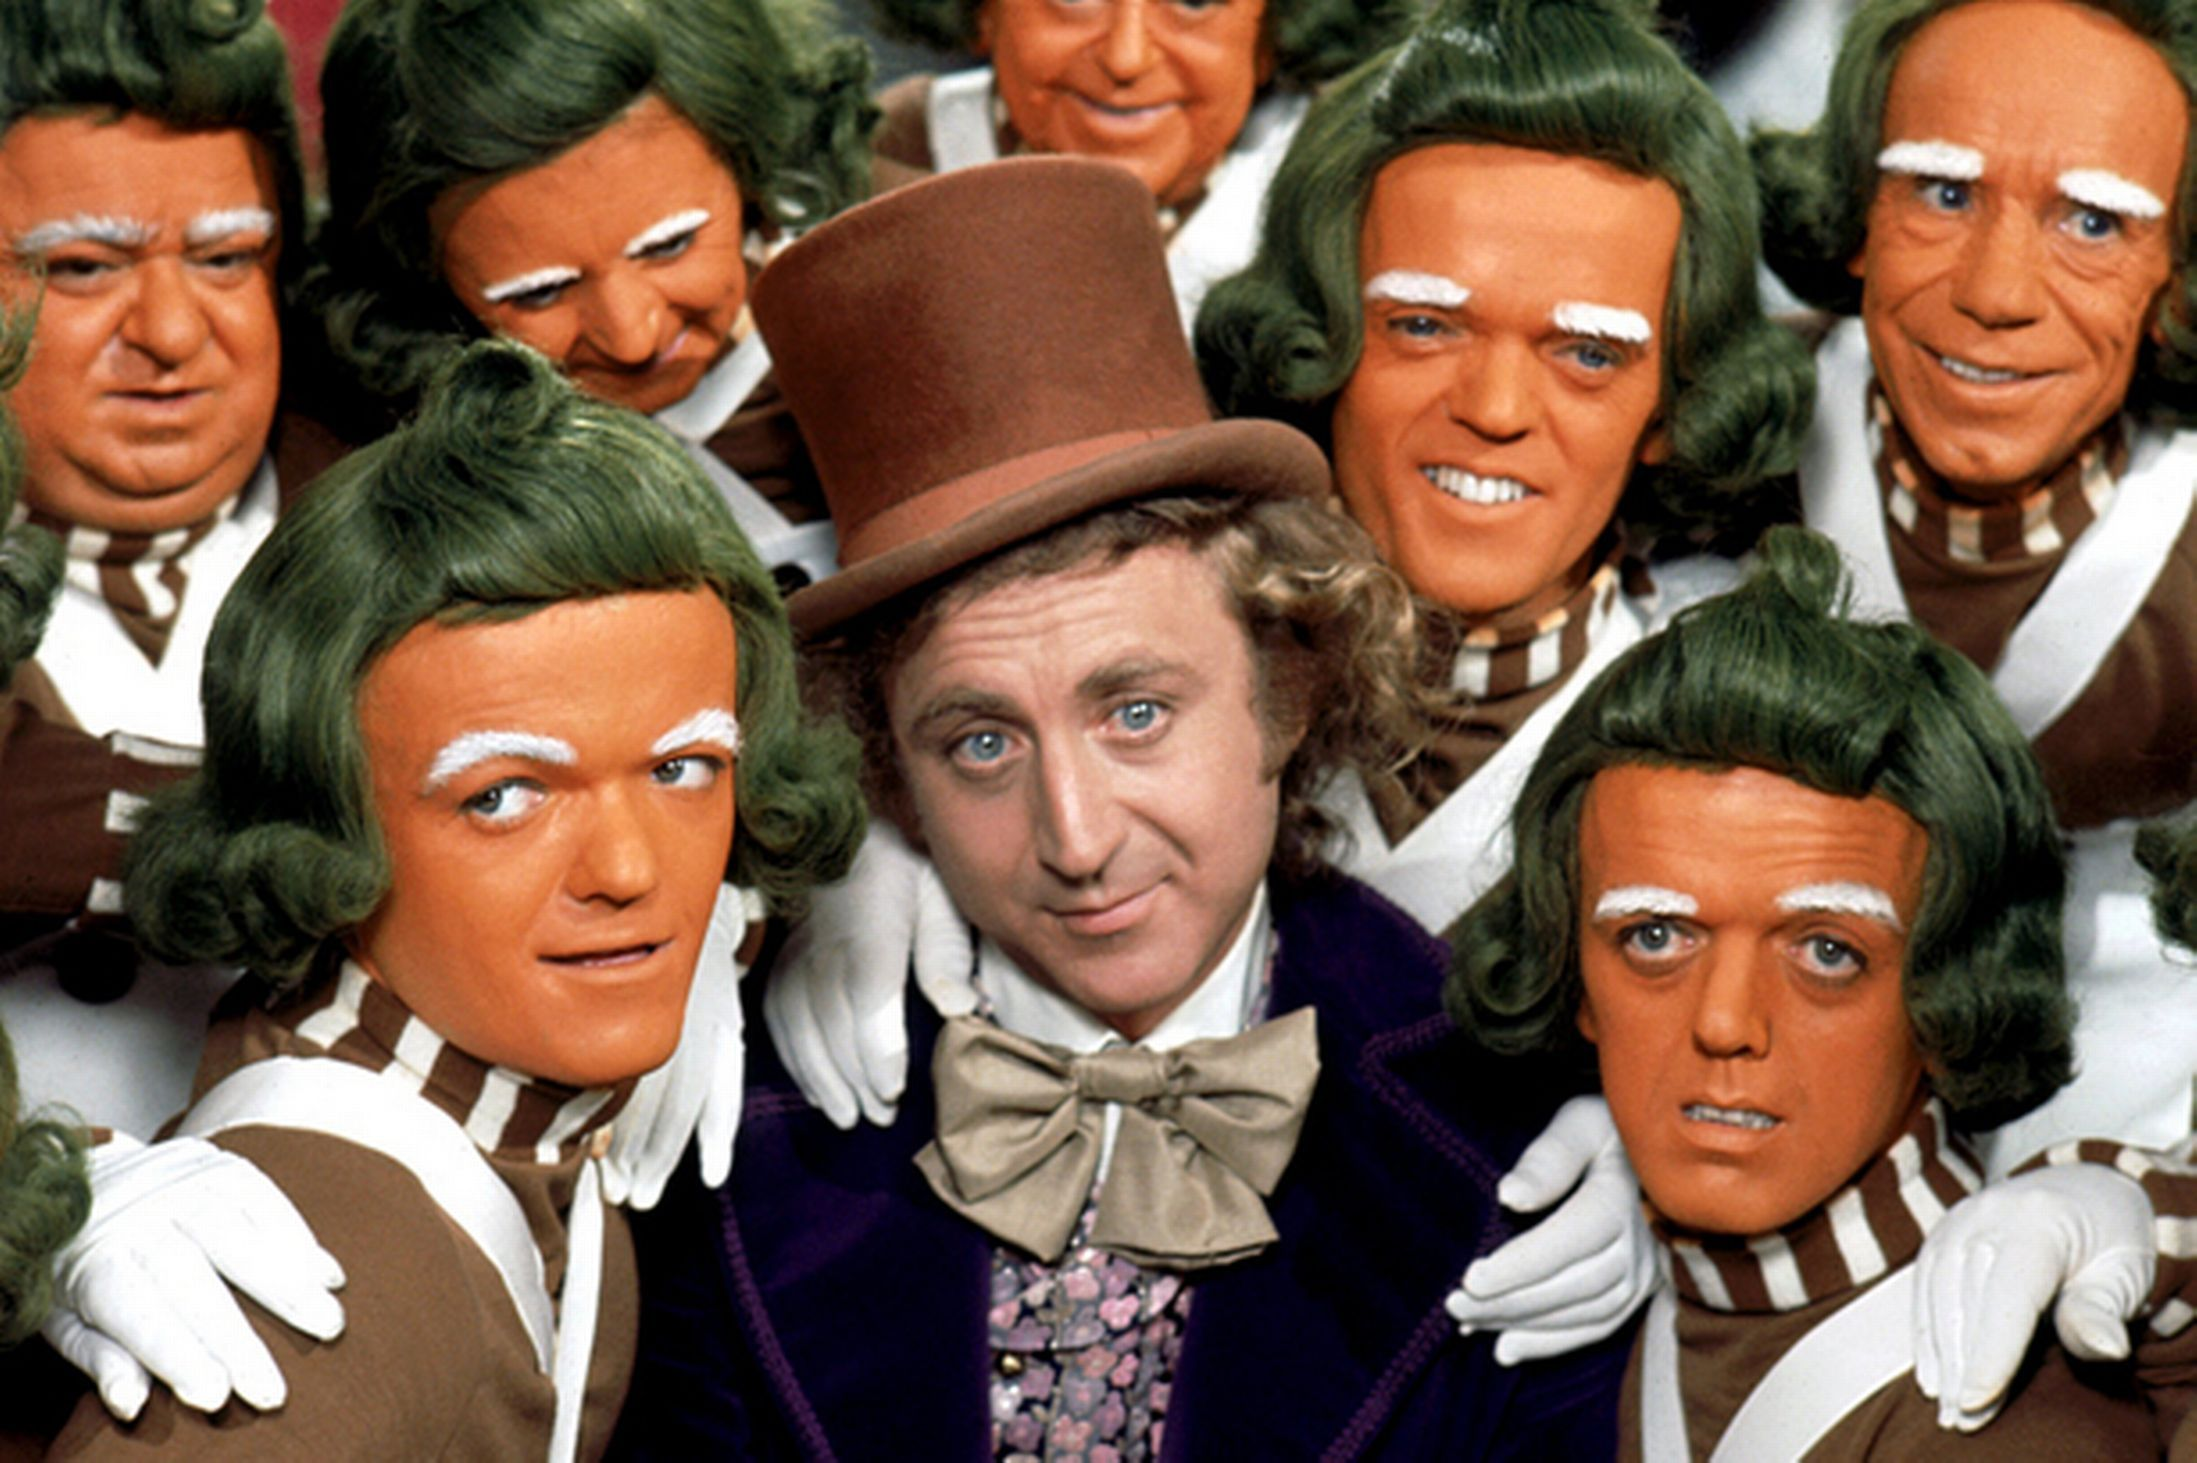 17 best images about charlie and the chocolate factory ronald 17 best images about charlie and the chocolate factory ronald dahl on the golden chewing gum and musicals